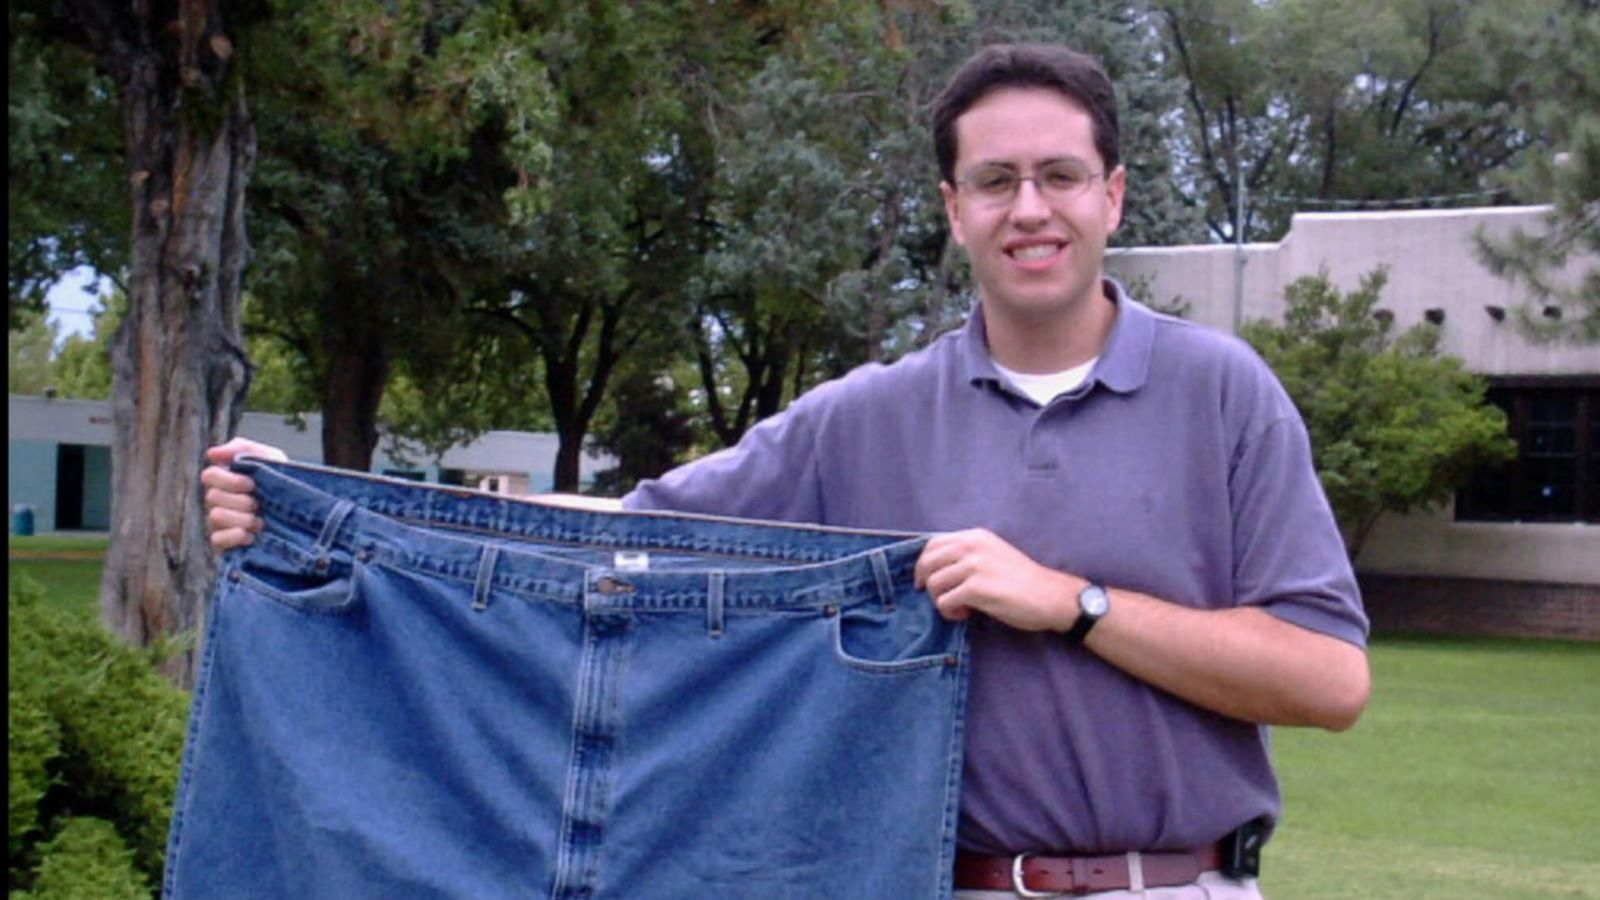 VIDEO: Jared Fogle's Ex-Wife Sues Subway